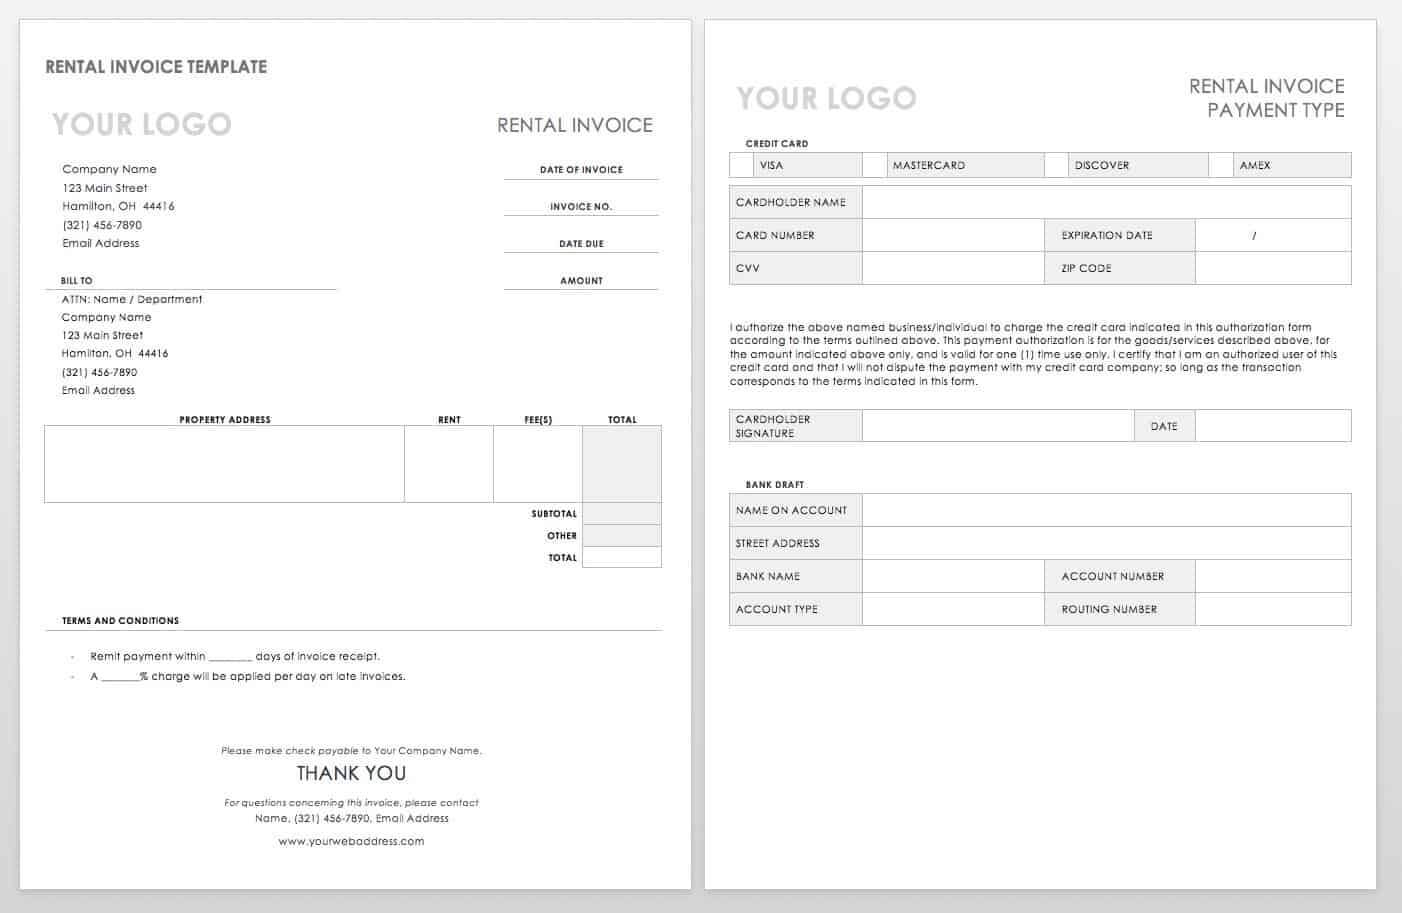 Free Ms Word Invoices Templates   Smartsheet with regard to Web Design Invoice Template Word